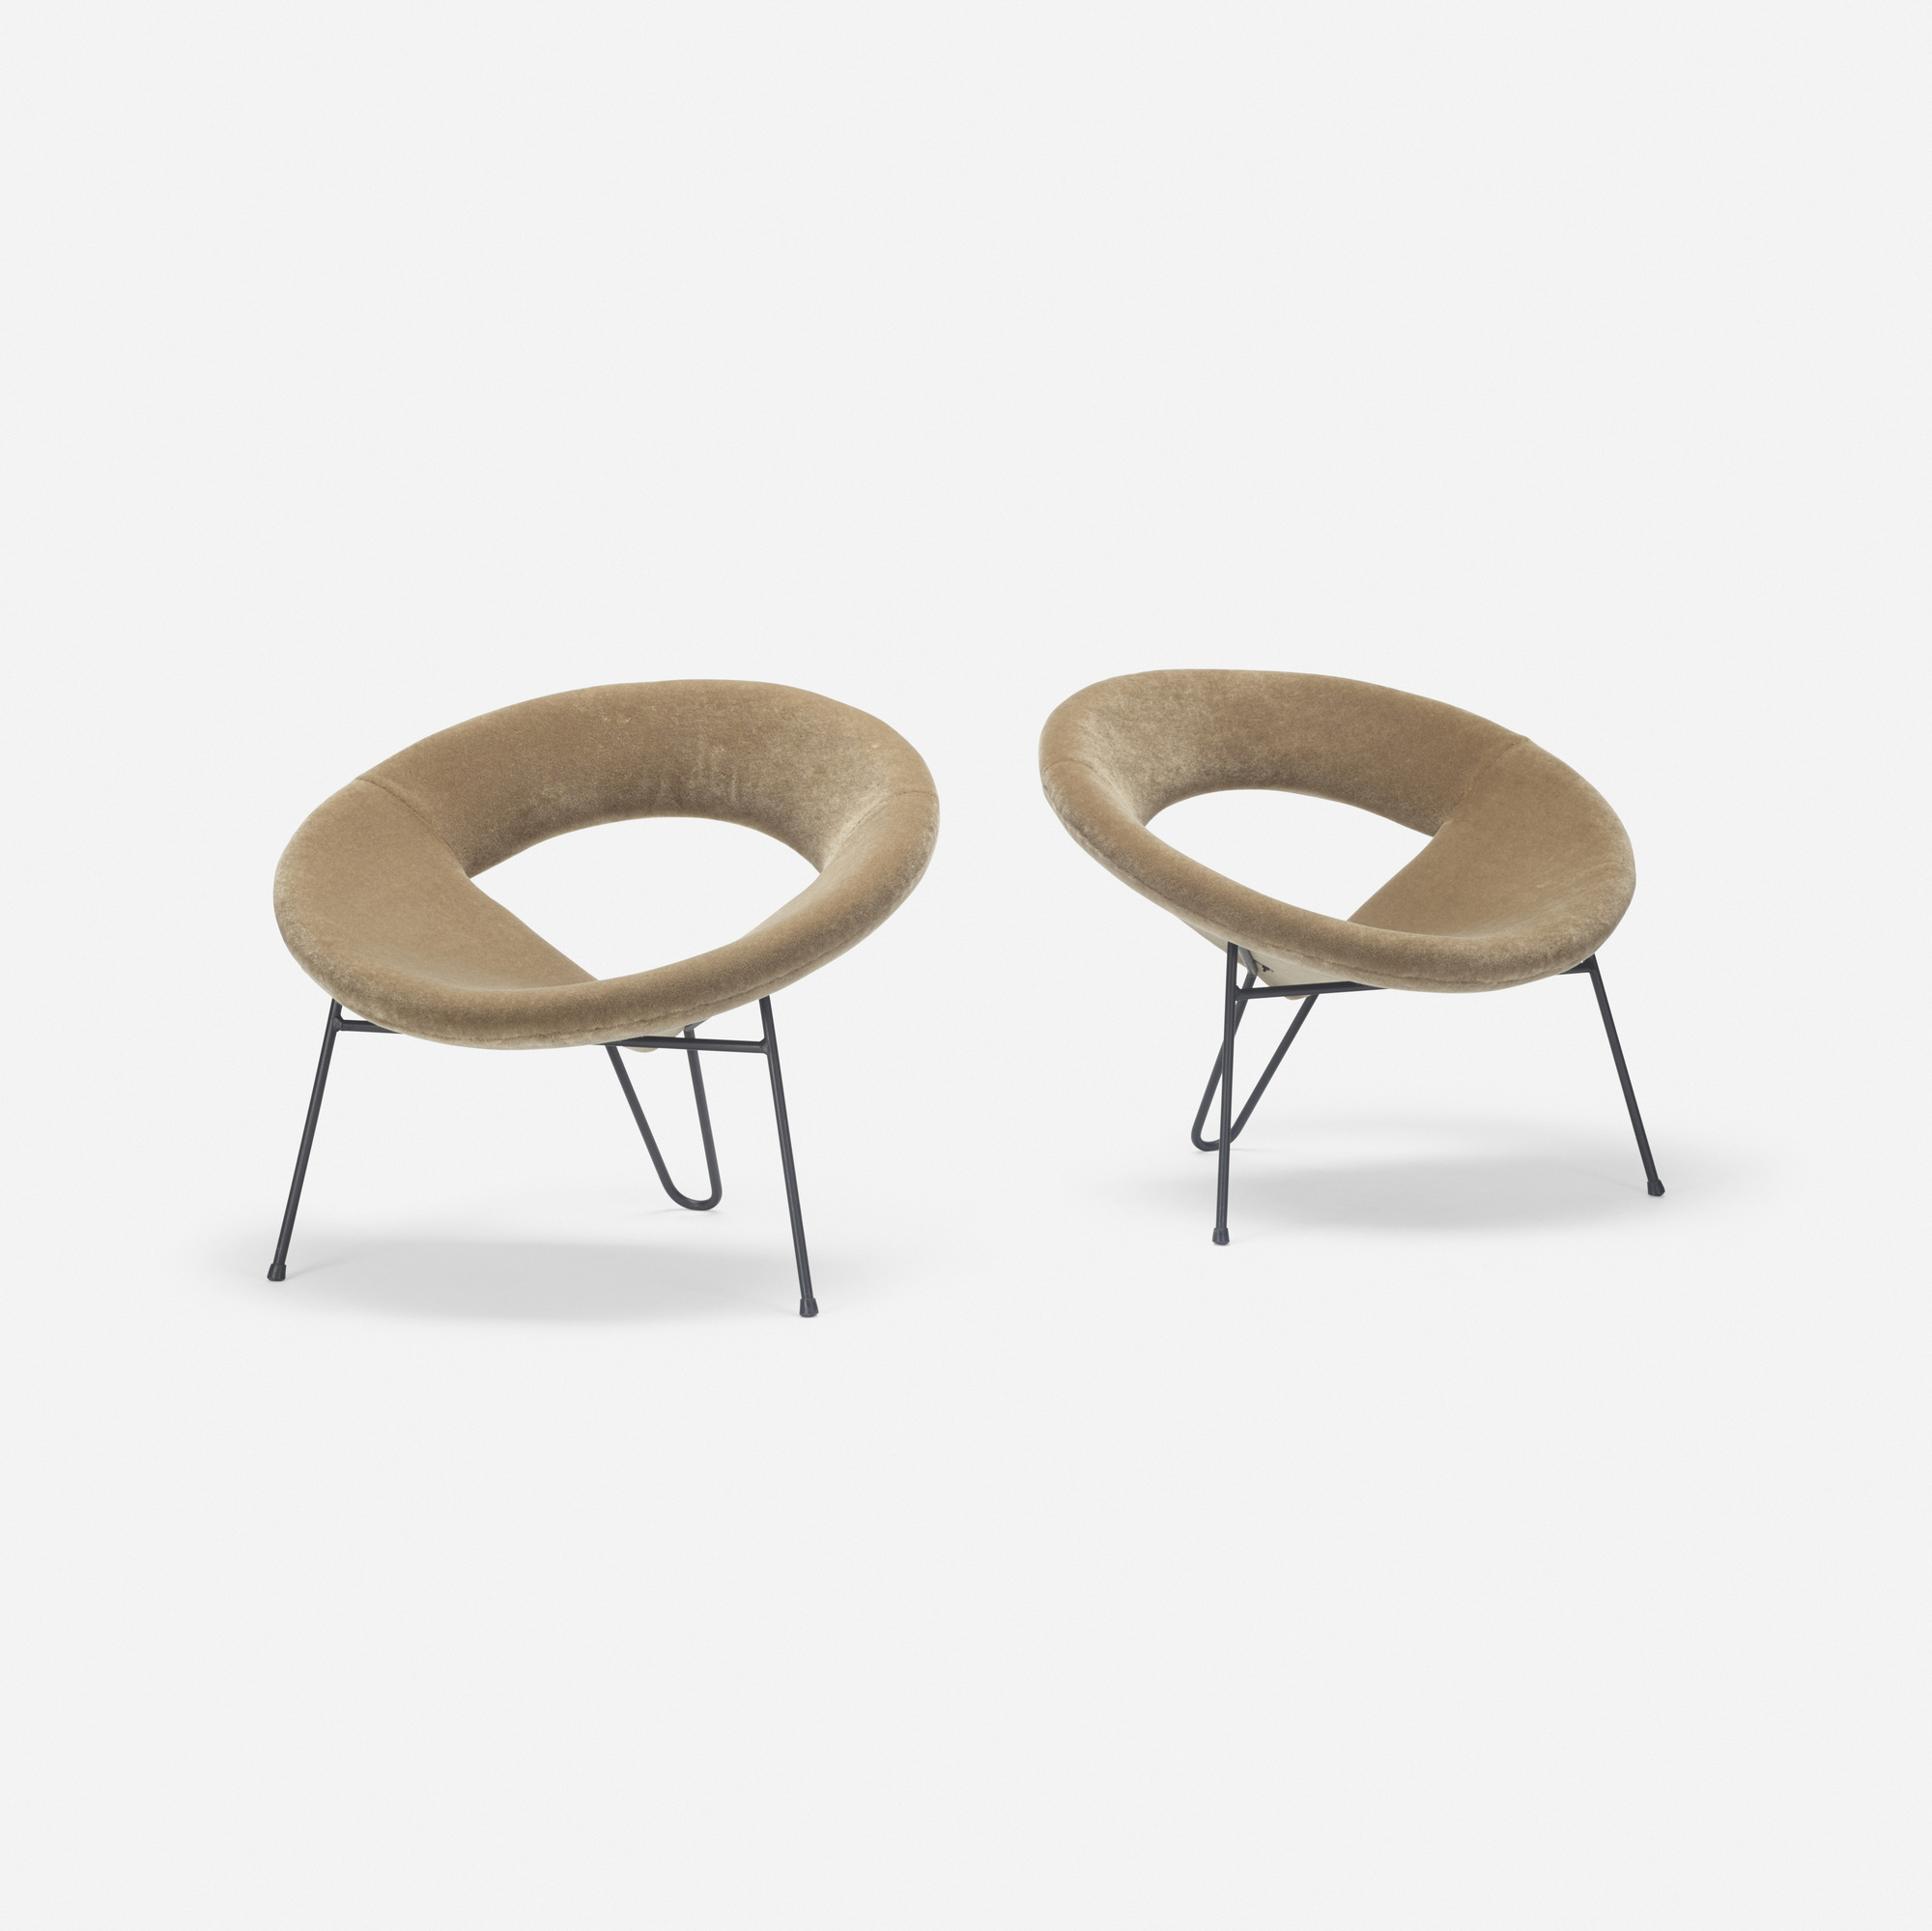 265: Henri Lancel / Satellite lounge chairs, pair (2 of 3)